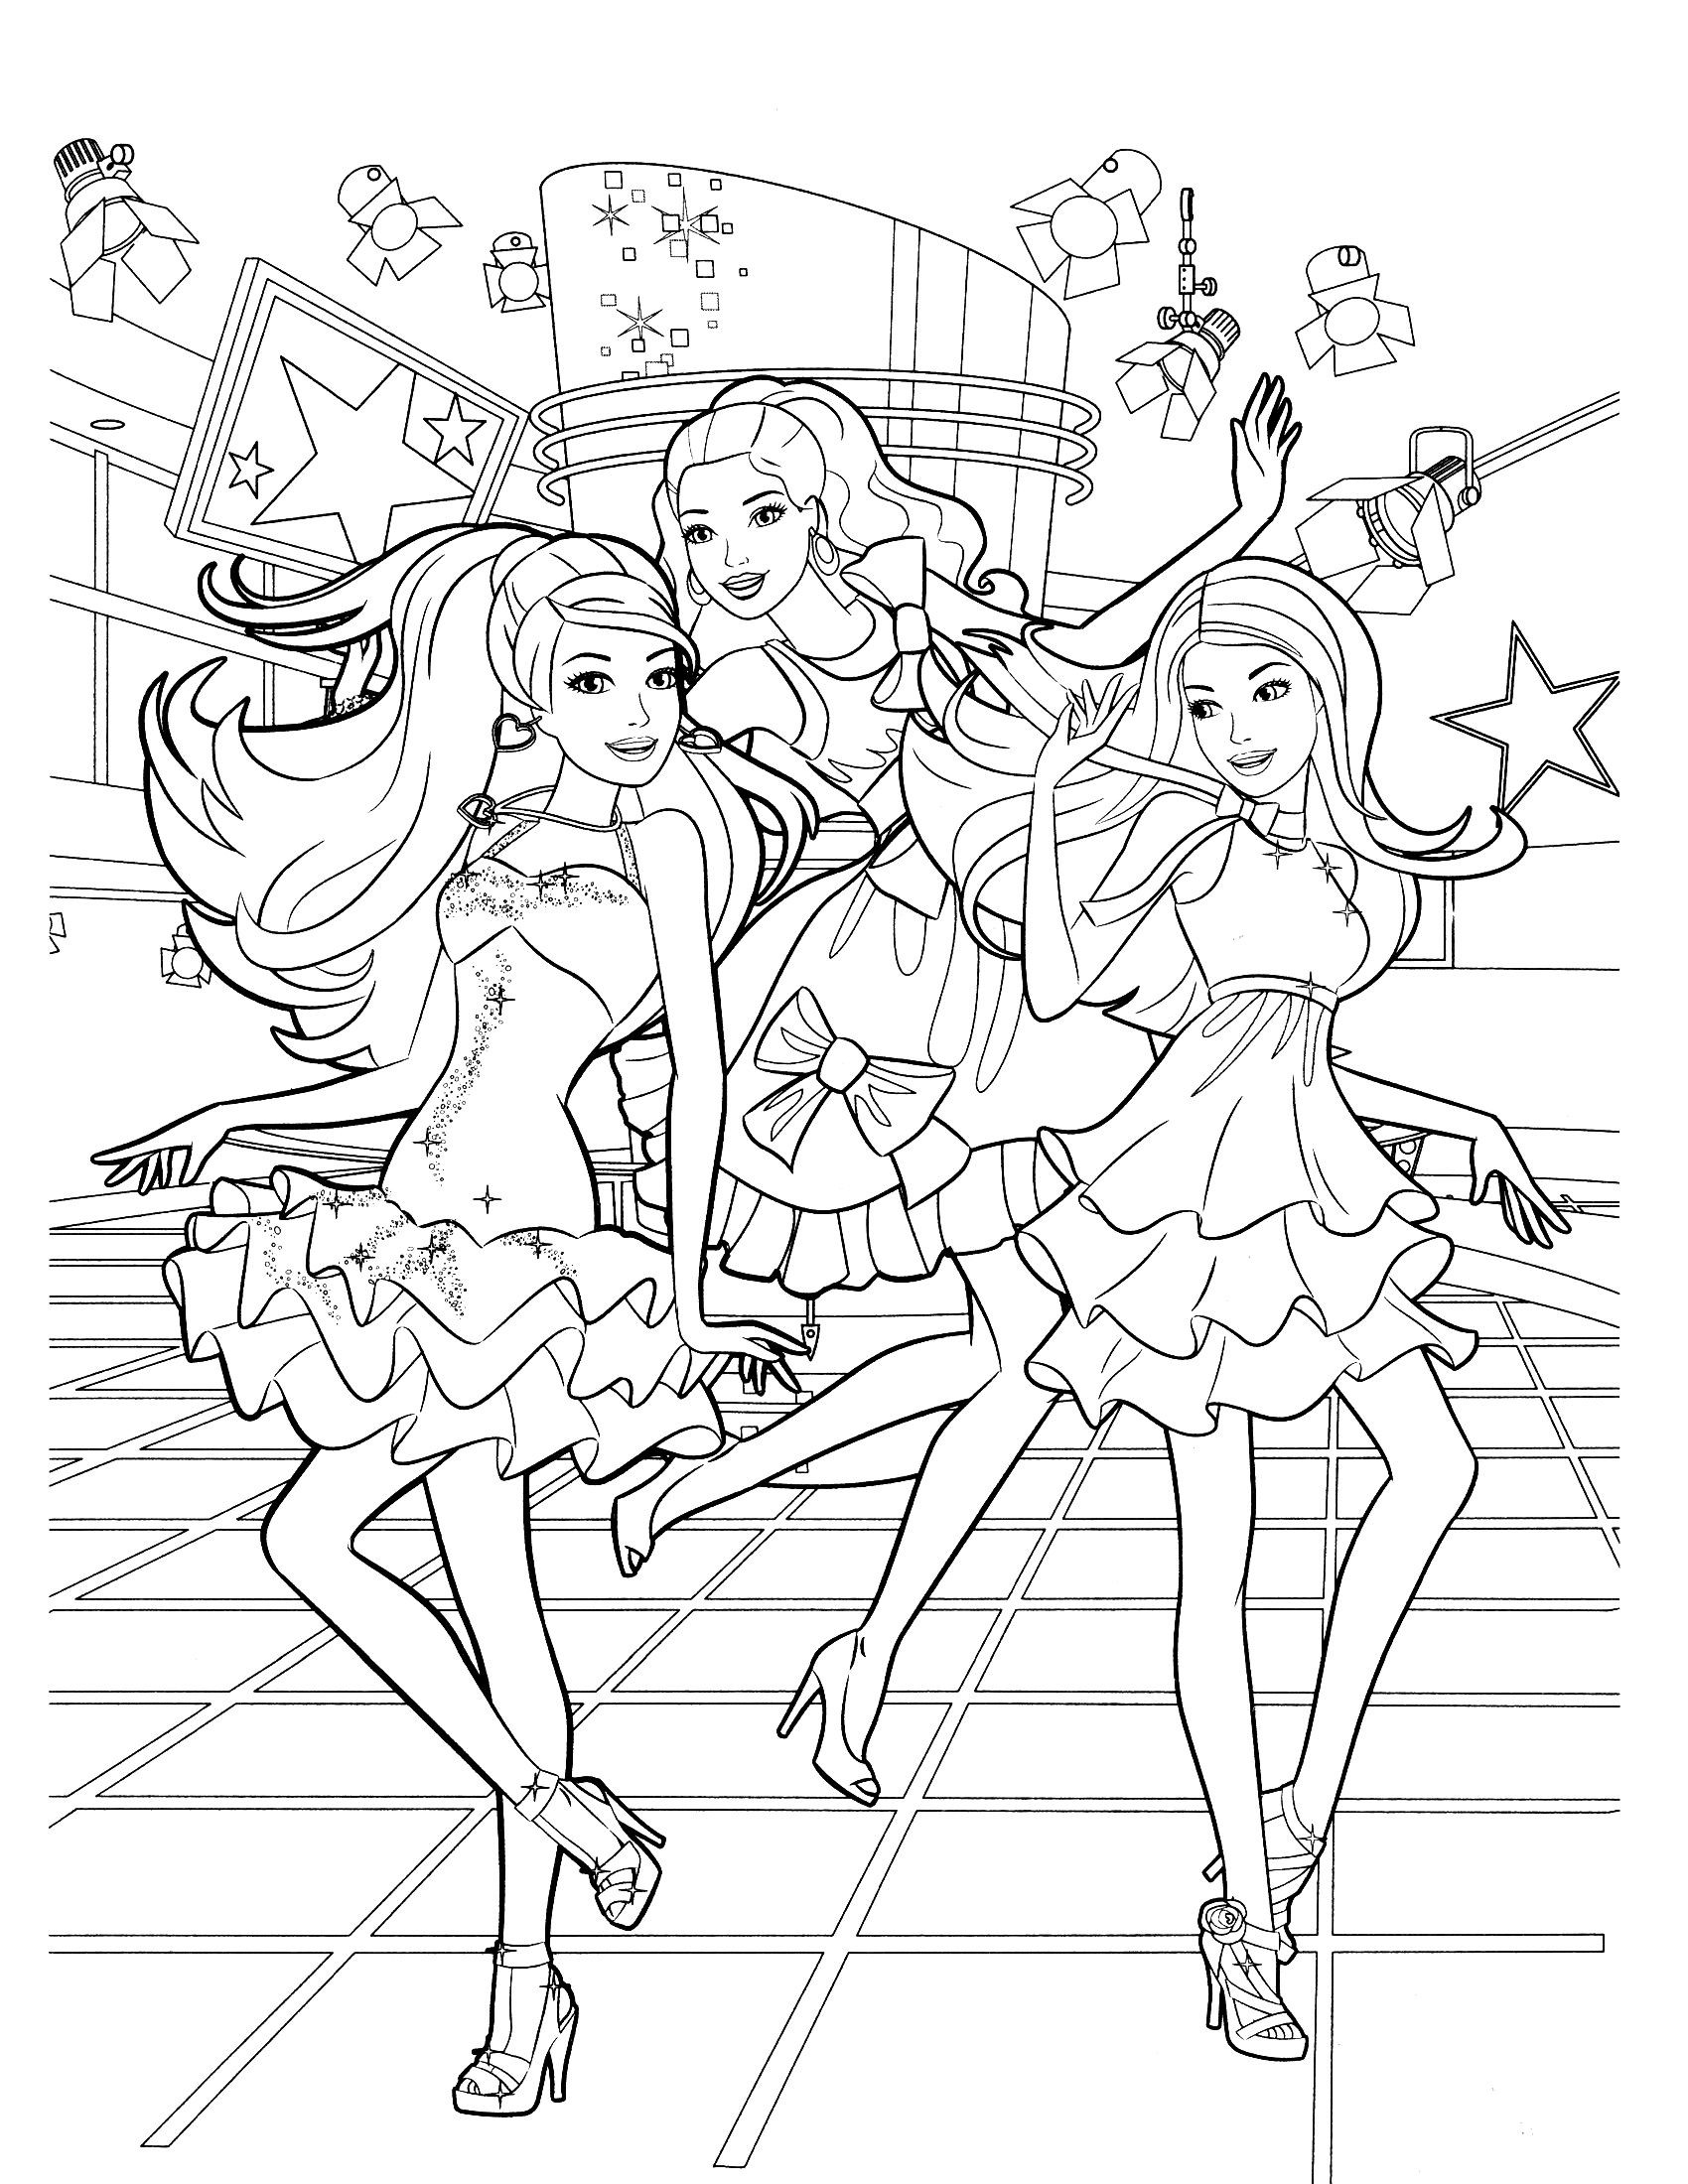 Coloring Book Games  Operation Game Coloring Pages